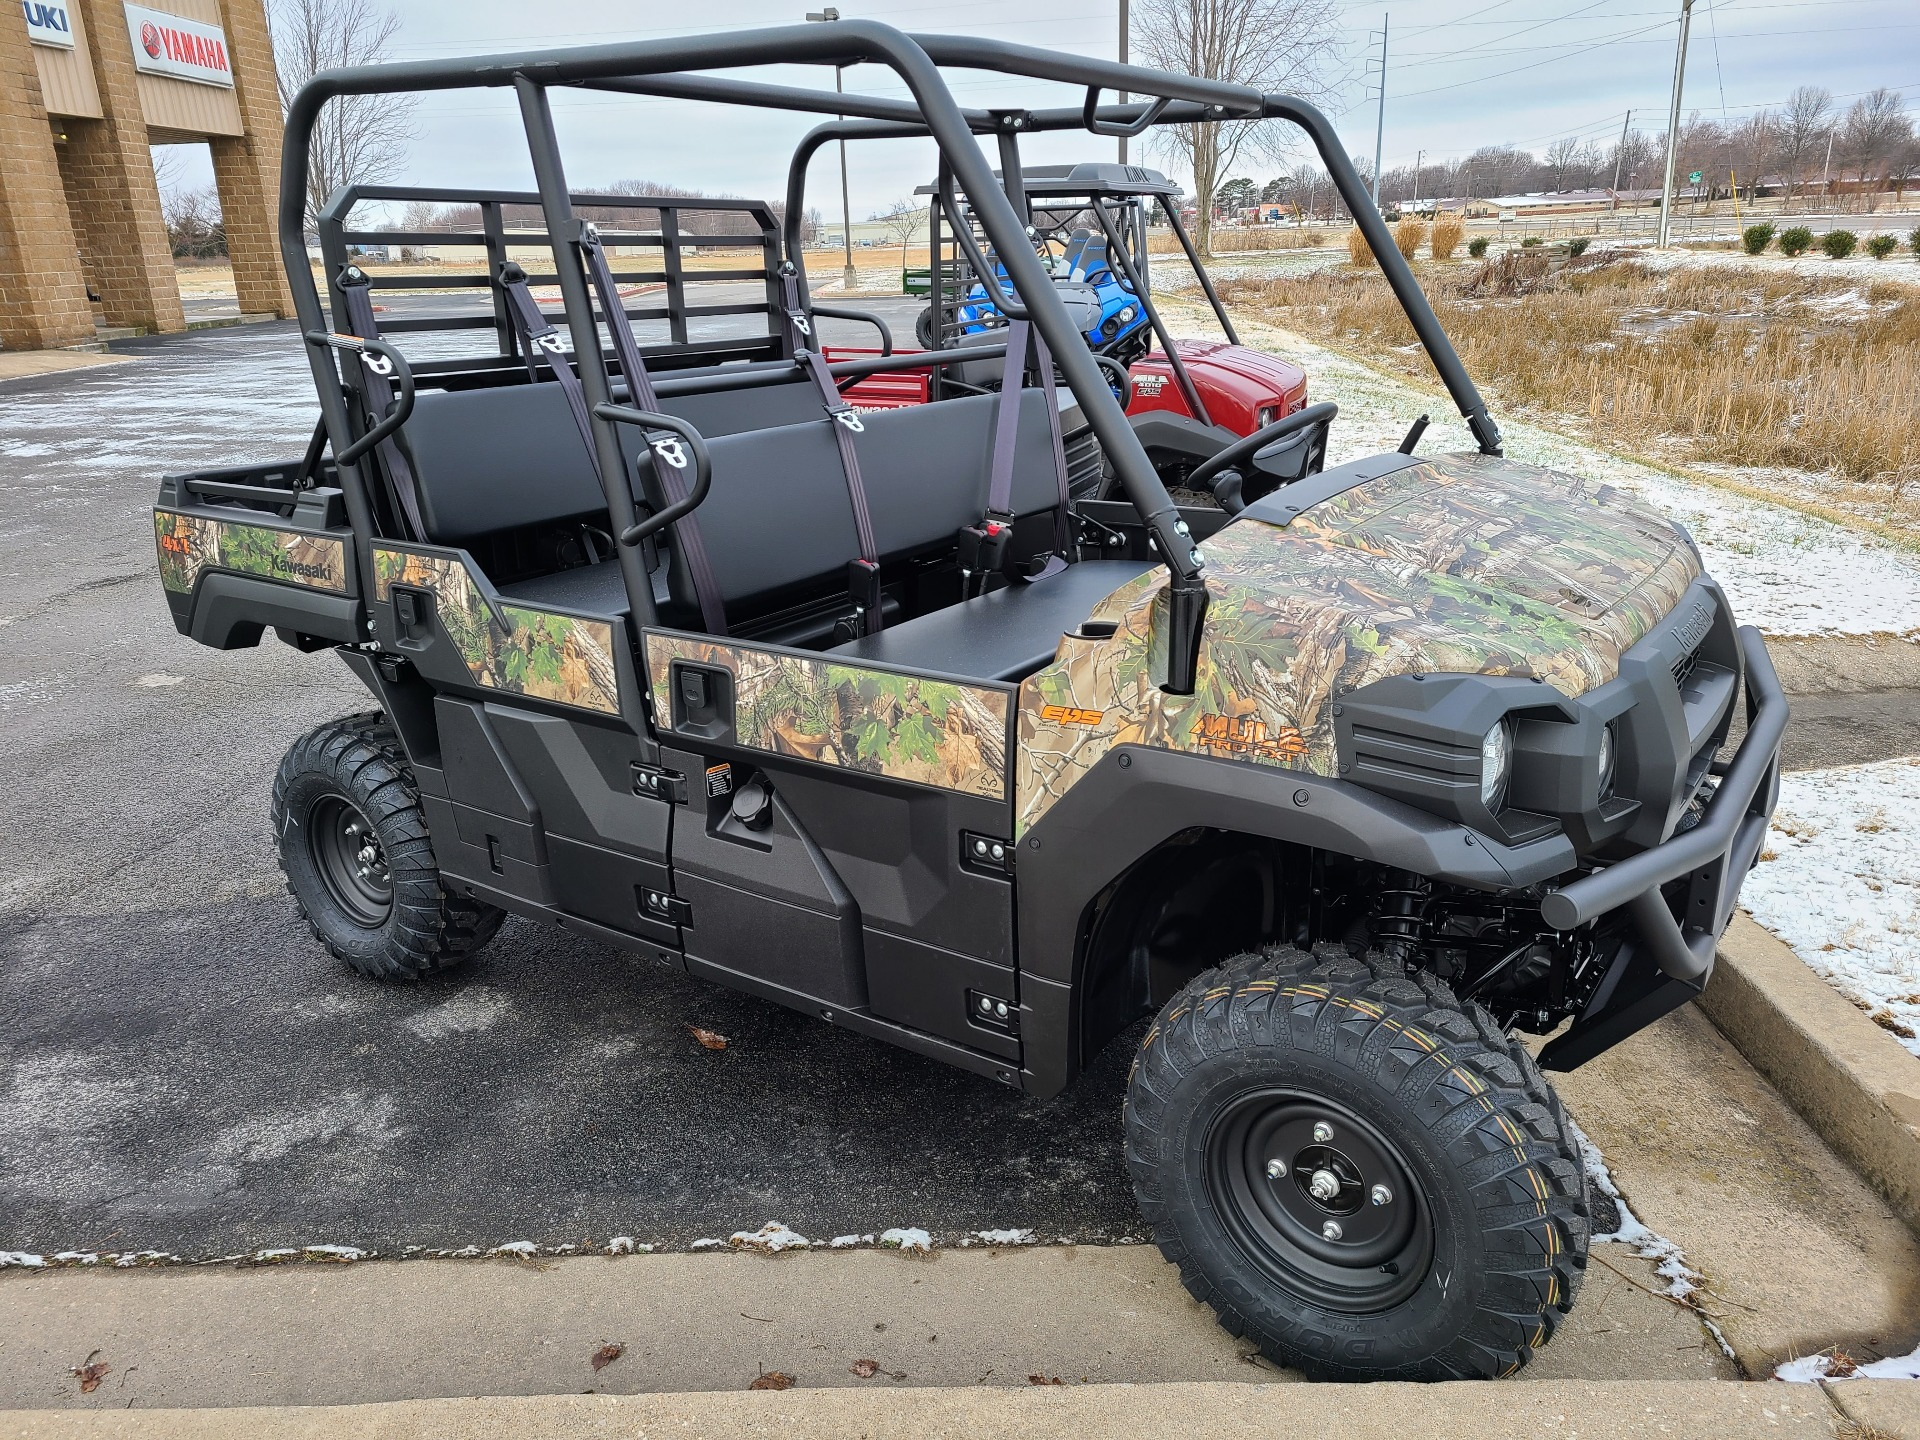 2021 Kawasaki Mule PRO-FXT EPS Camo in Rogers, Arkansas - Photo 3